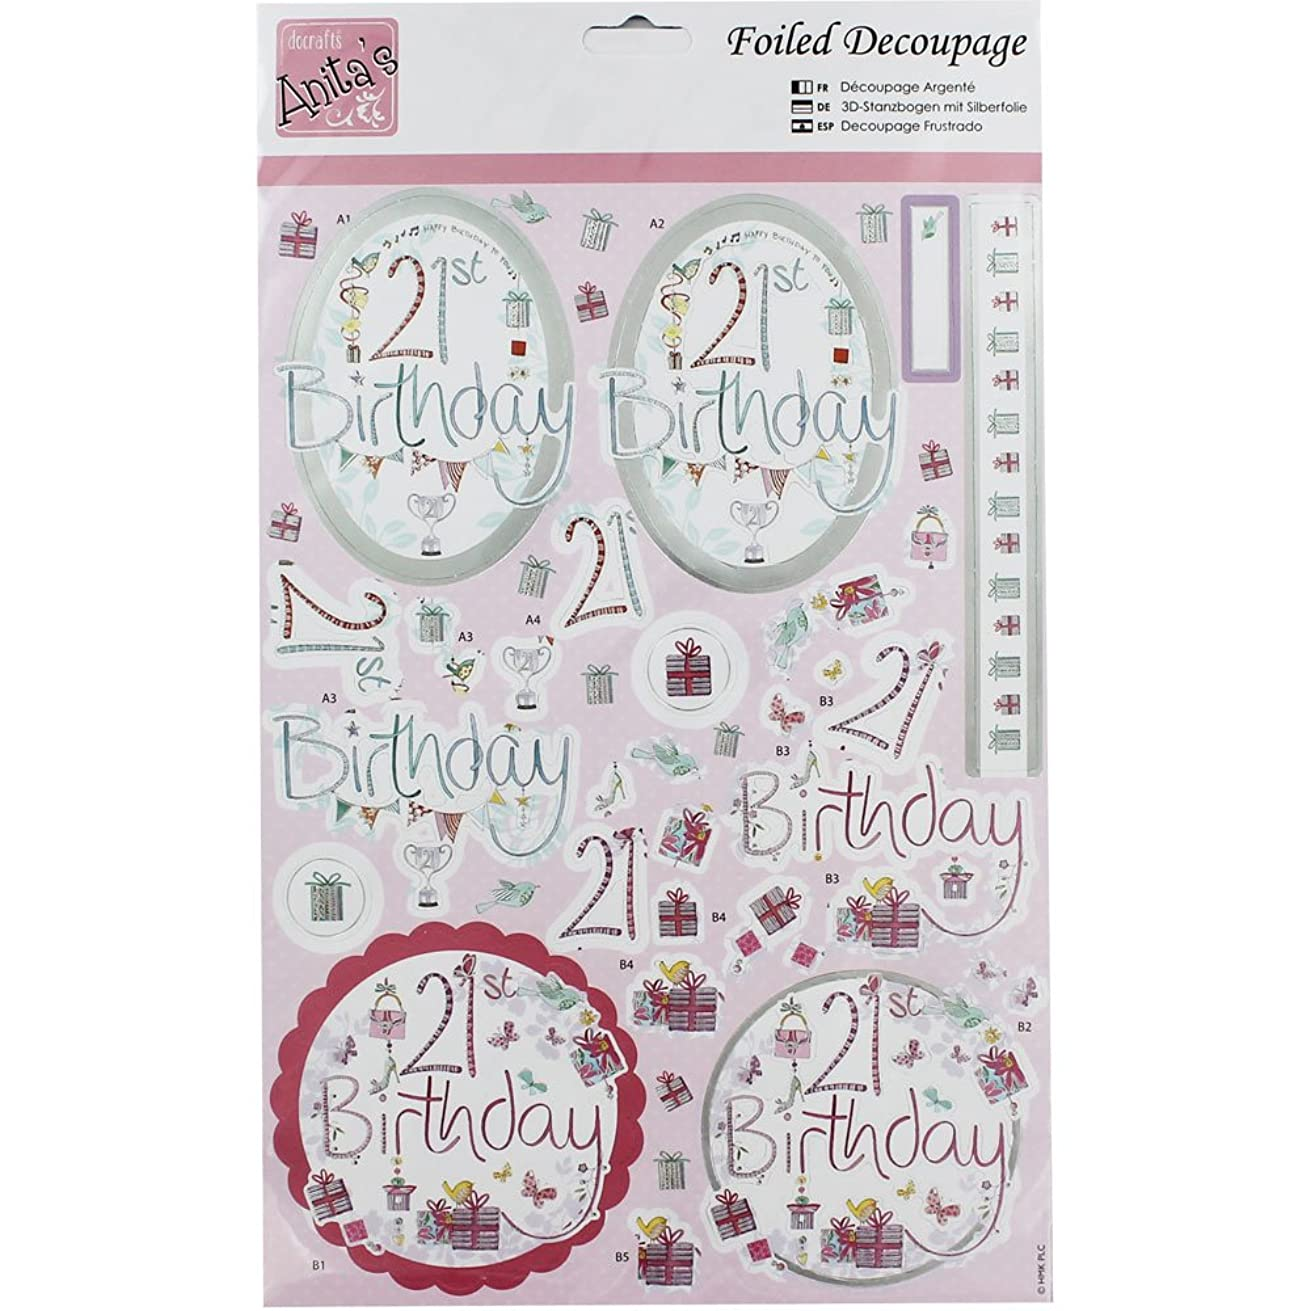 DOCrafts ANT169607 Anita's 21st Birthday A4 Foiled Decoupage Sheet, Multicolor